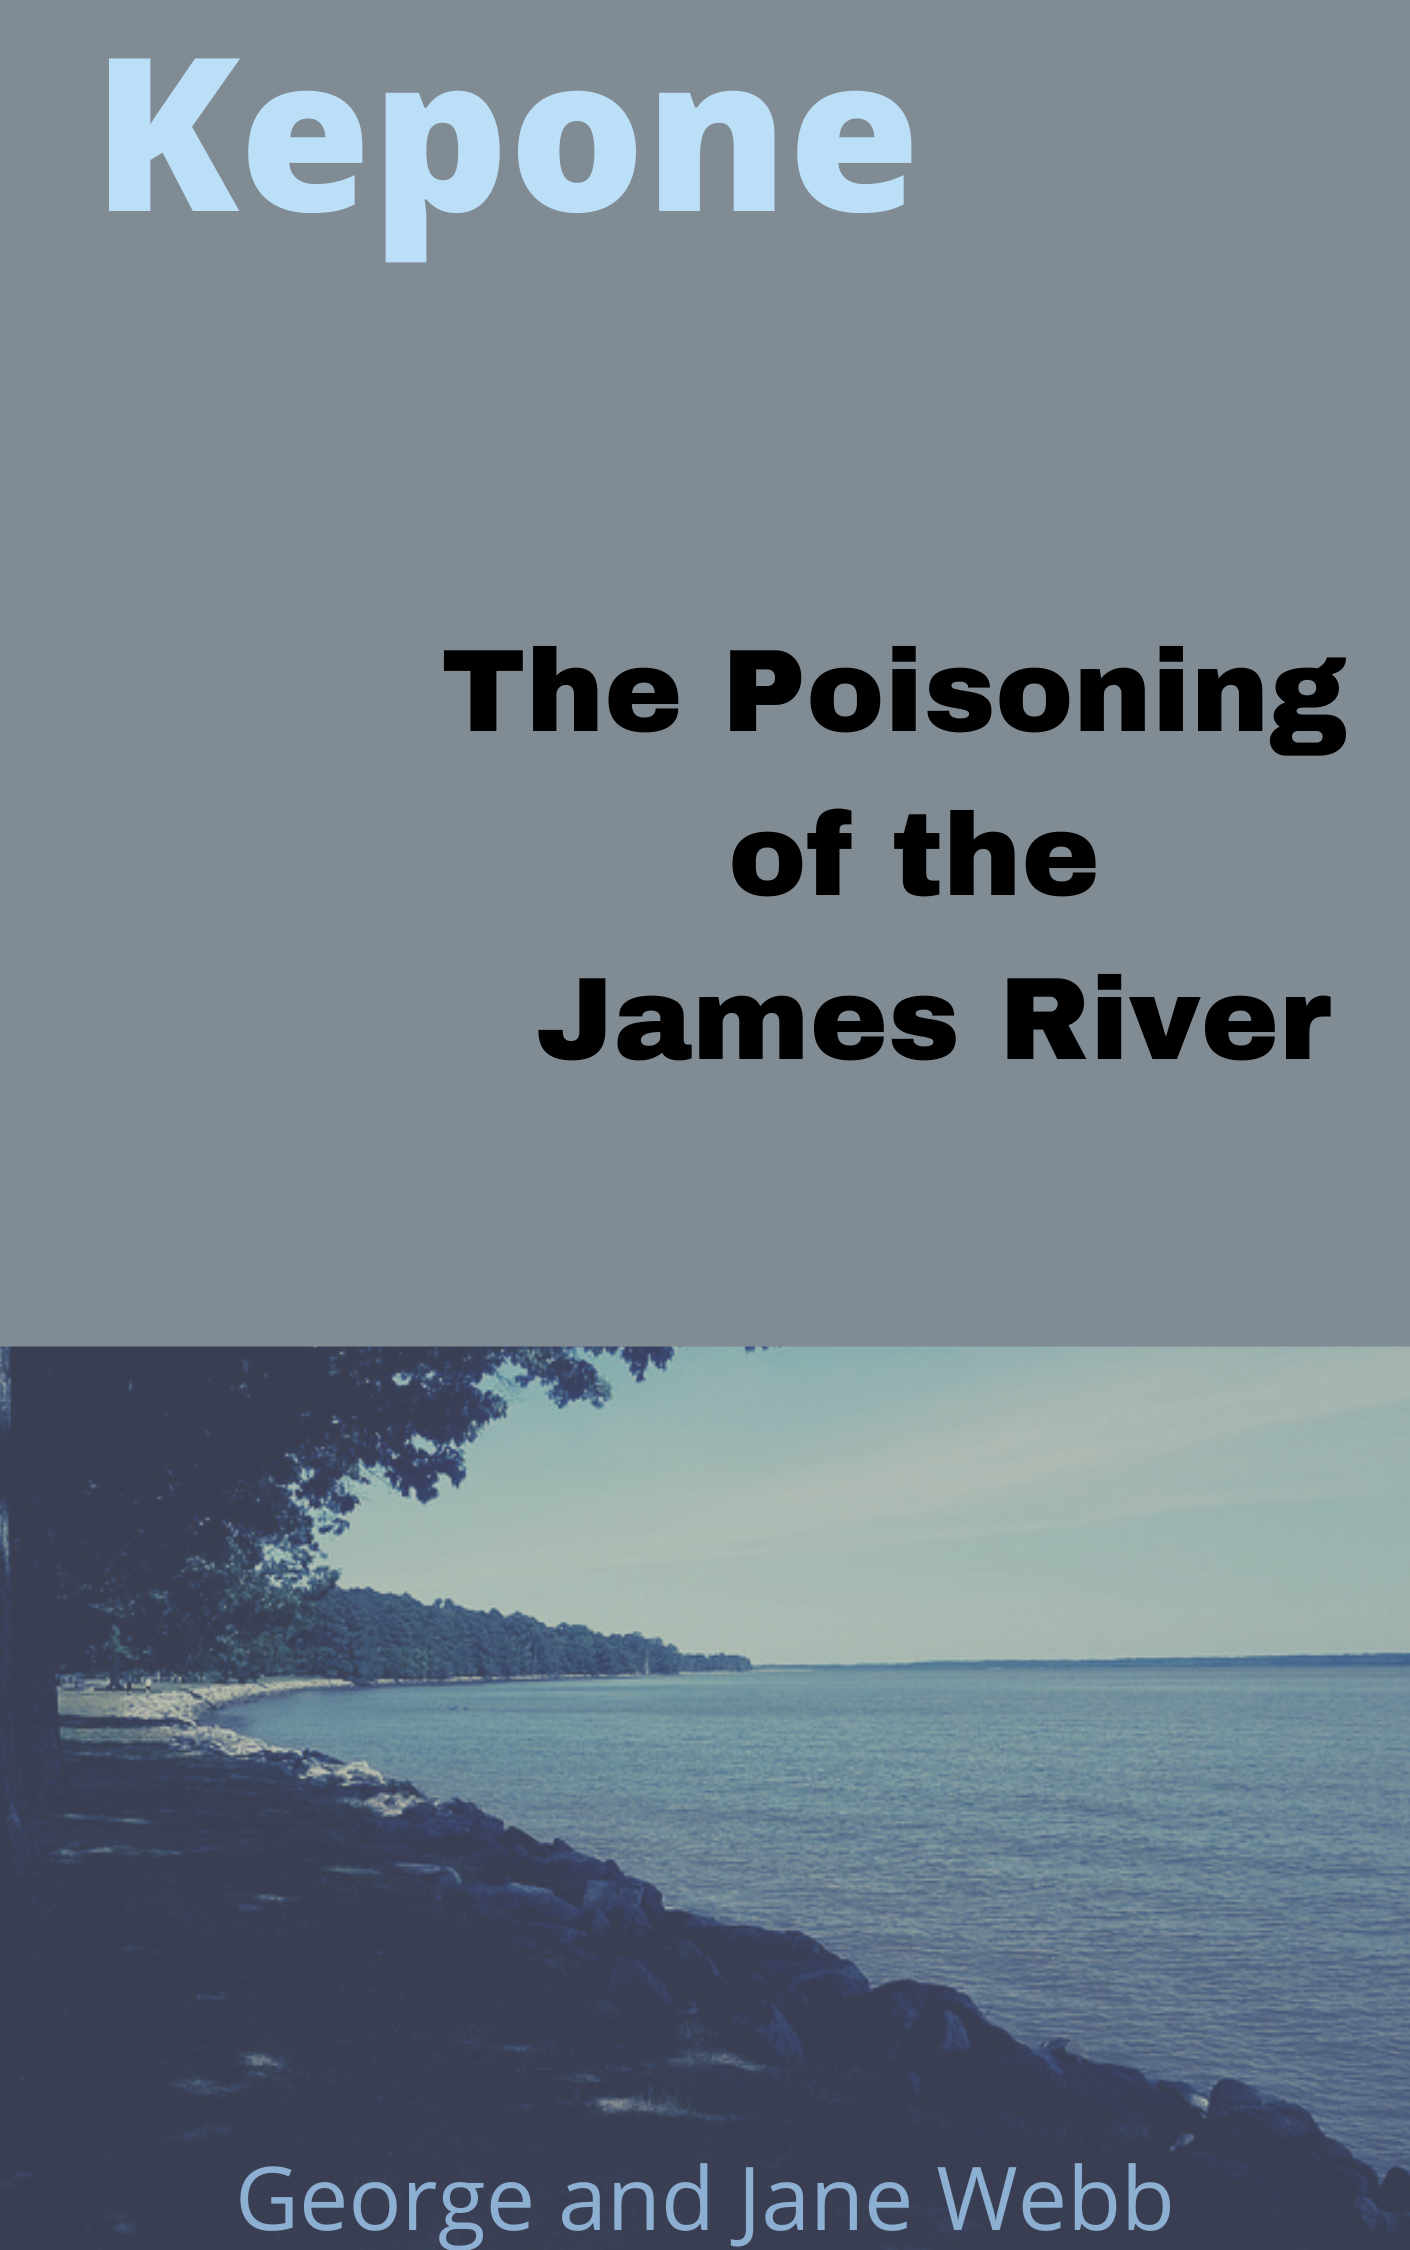 KeKepone: The Poisoning of the James River